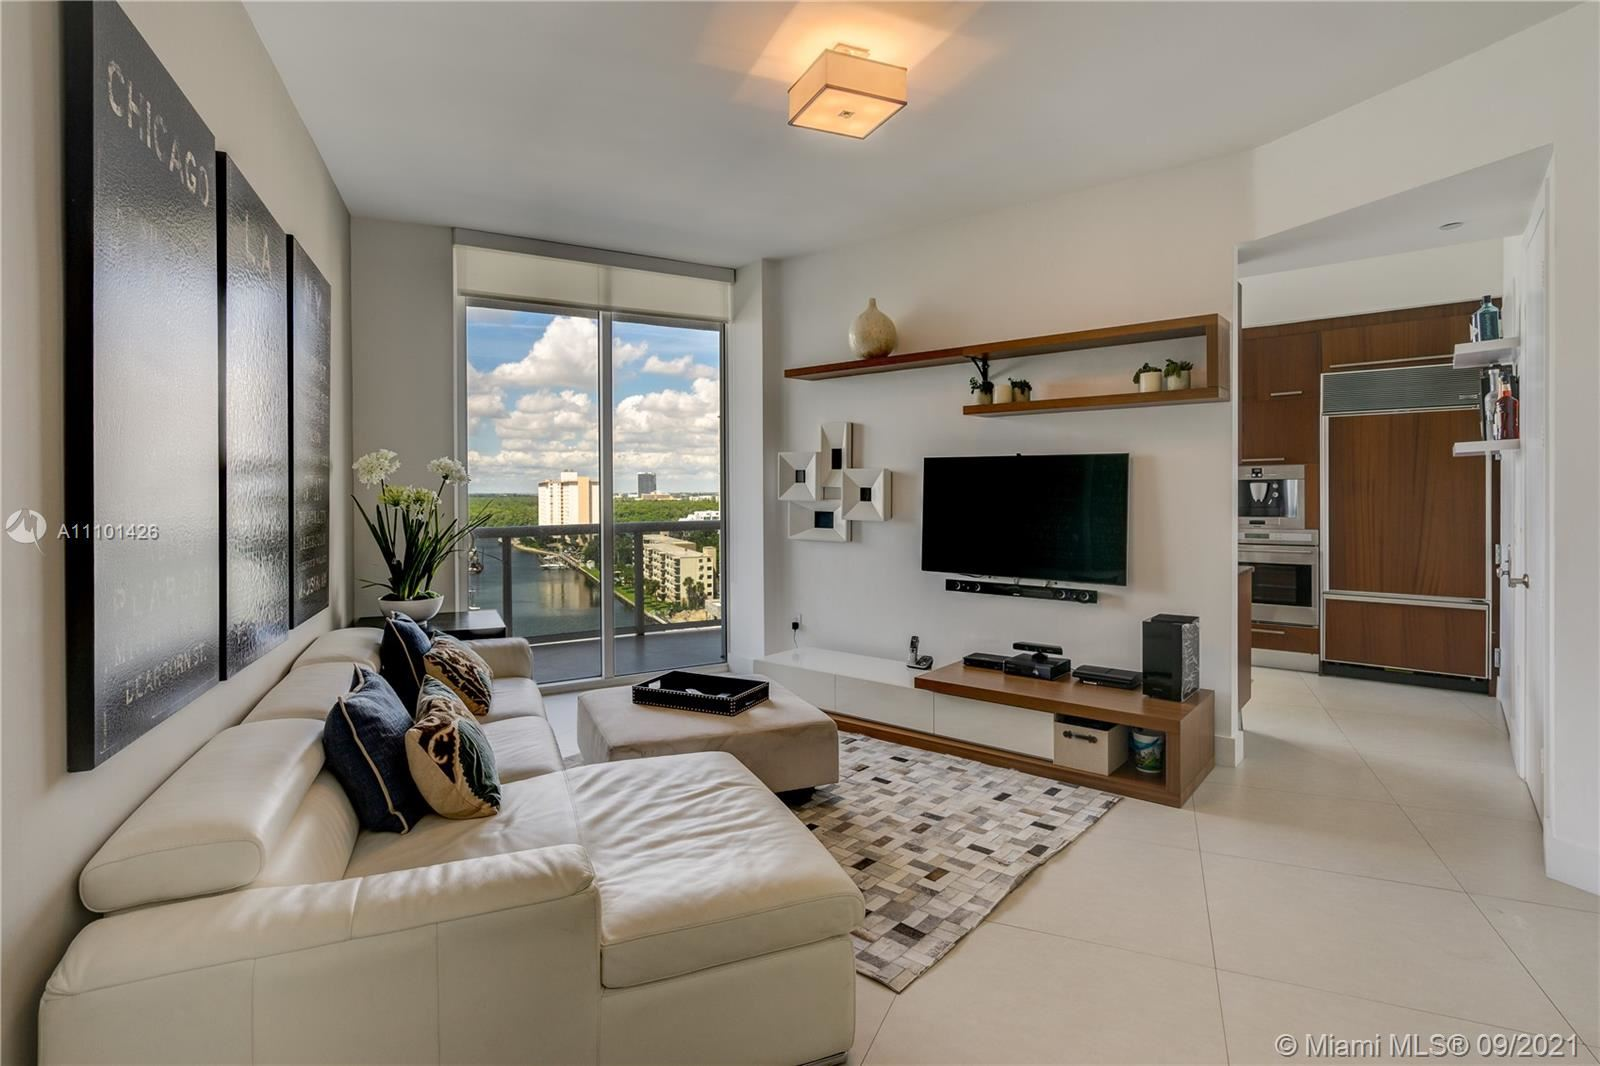 15811 Collins Ave #1005, Sunny Isles, FL 33160 - #: A11101426